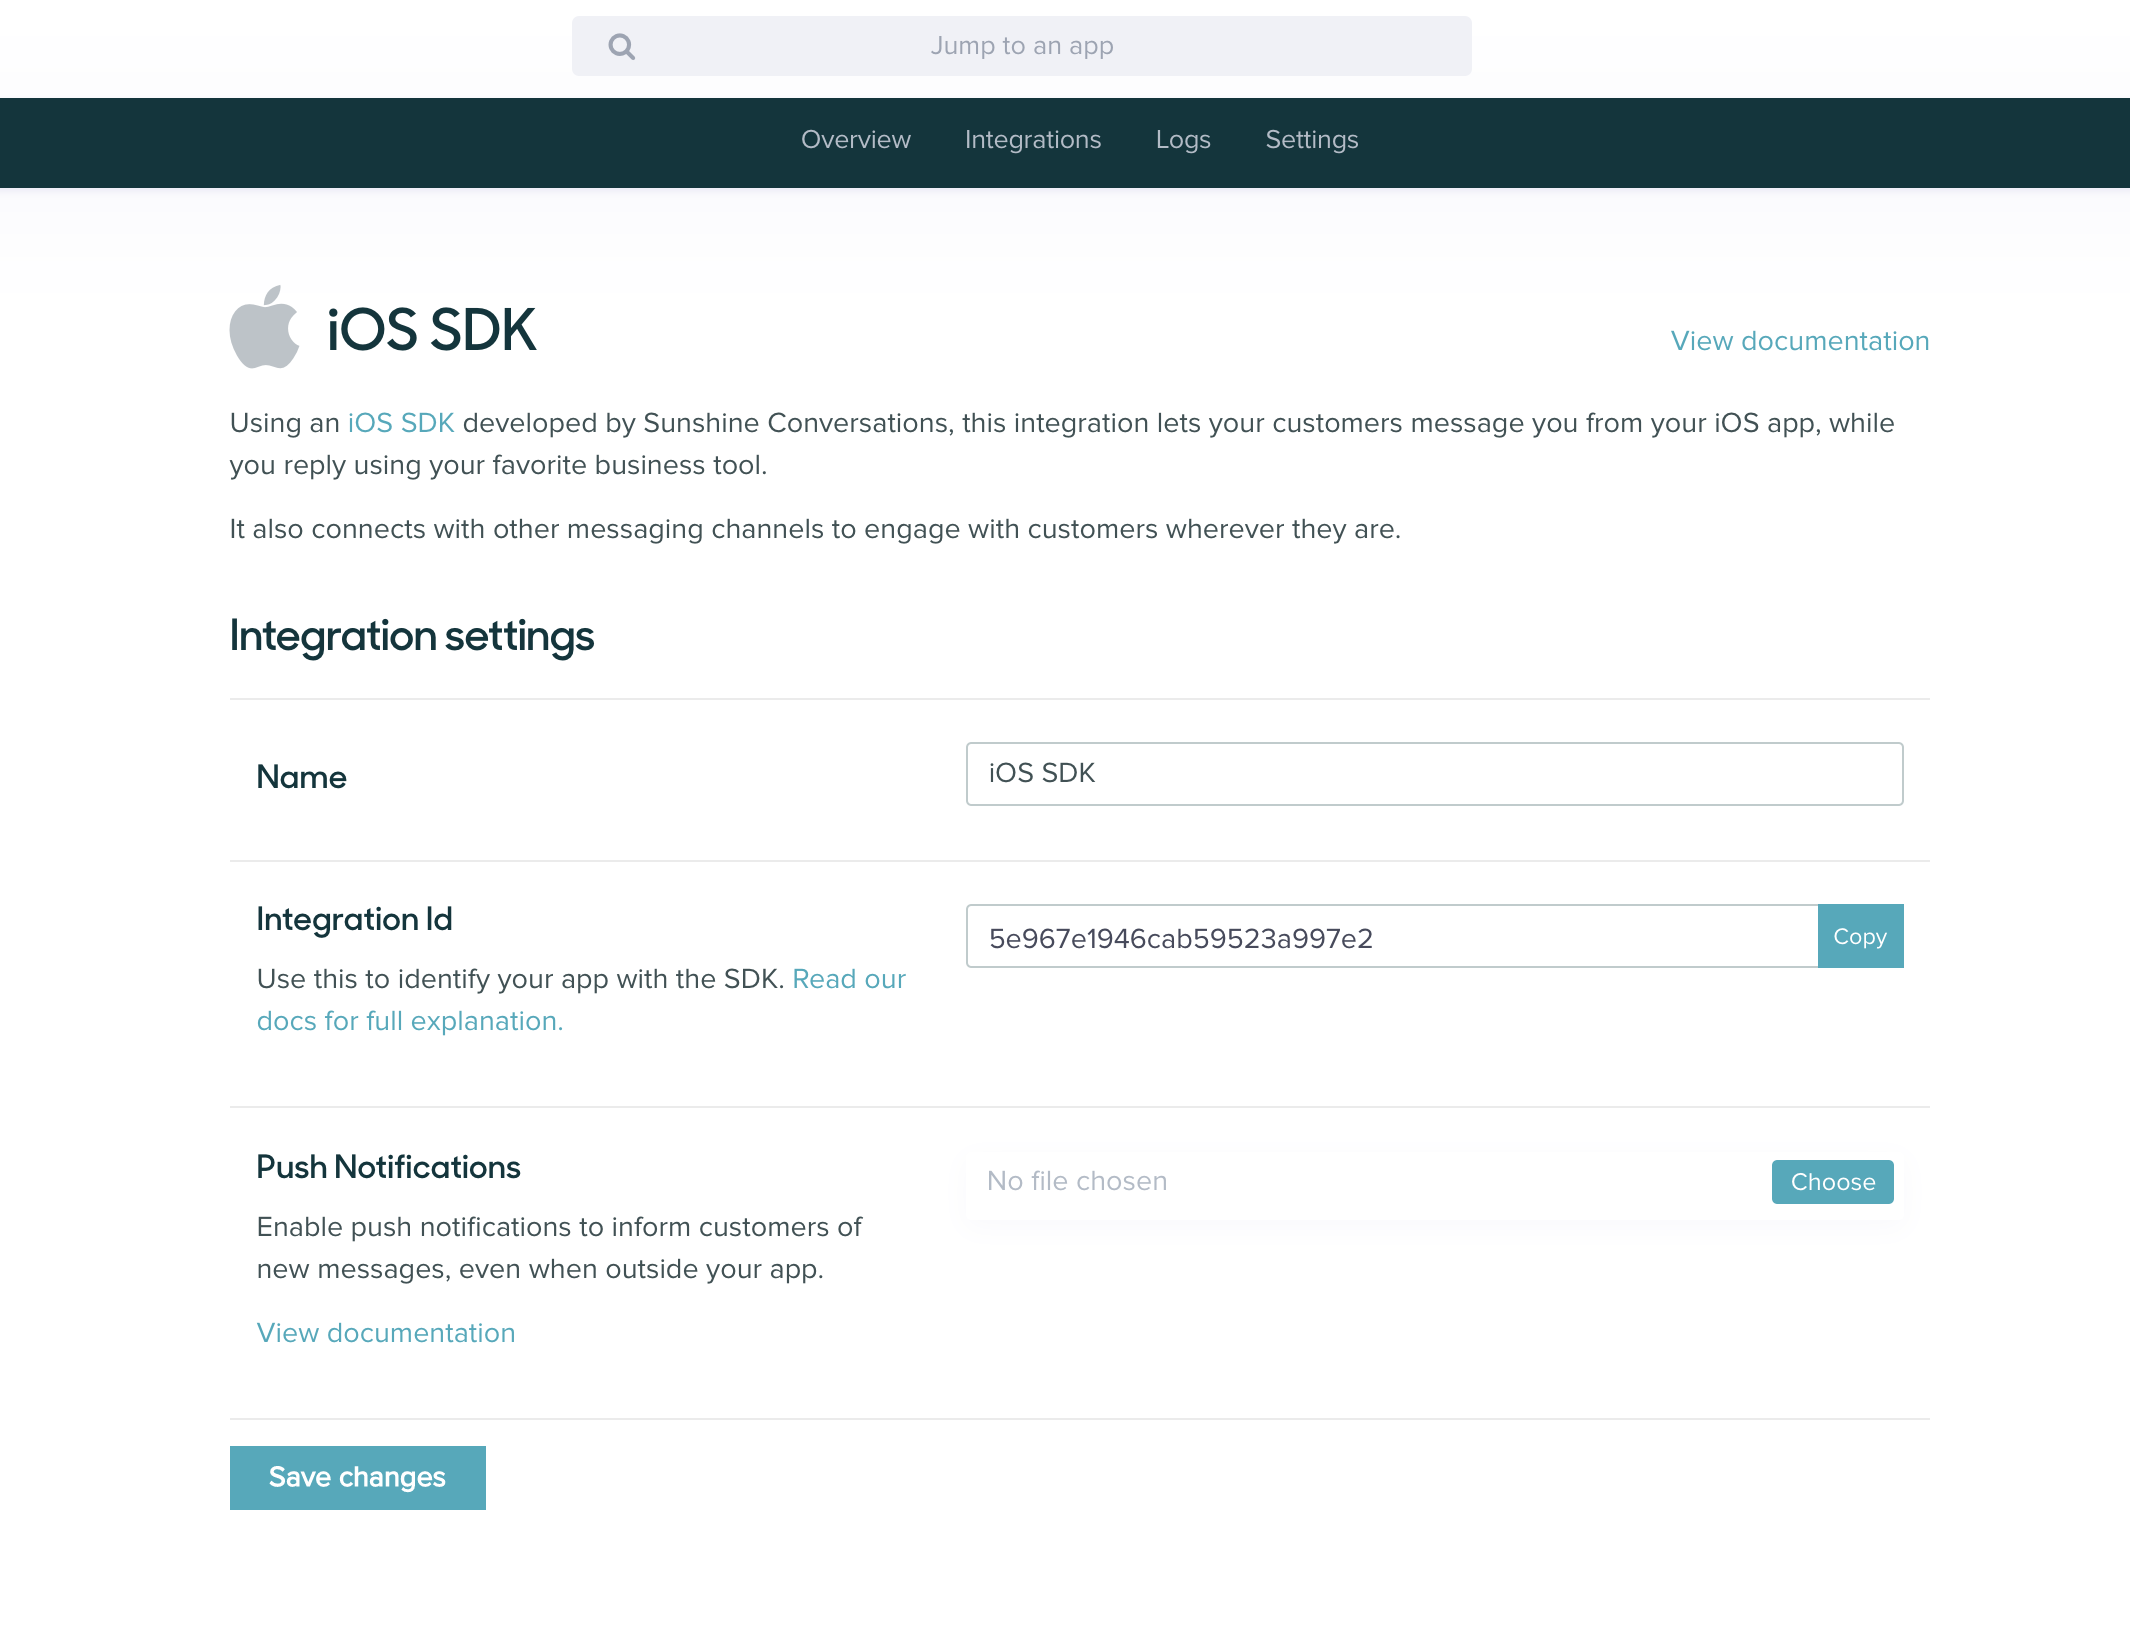 Integration ID on iOS Overview Page